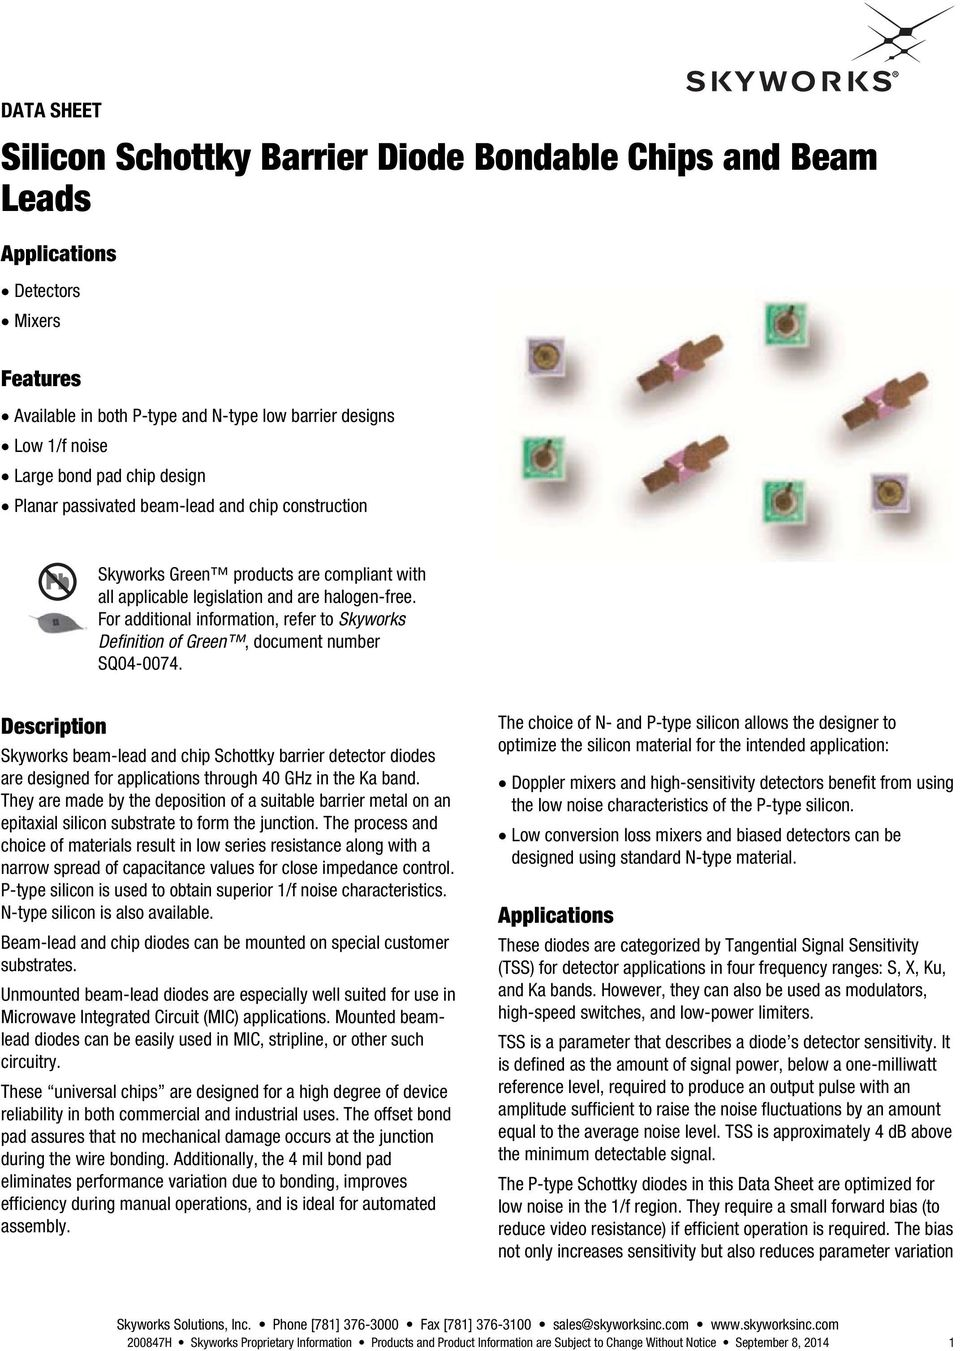 Silicon Schottky Barrier Diode Bondable Chips and Beam Leads - PDF